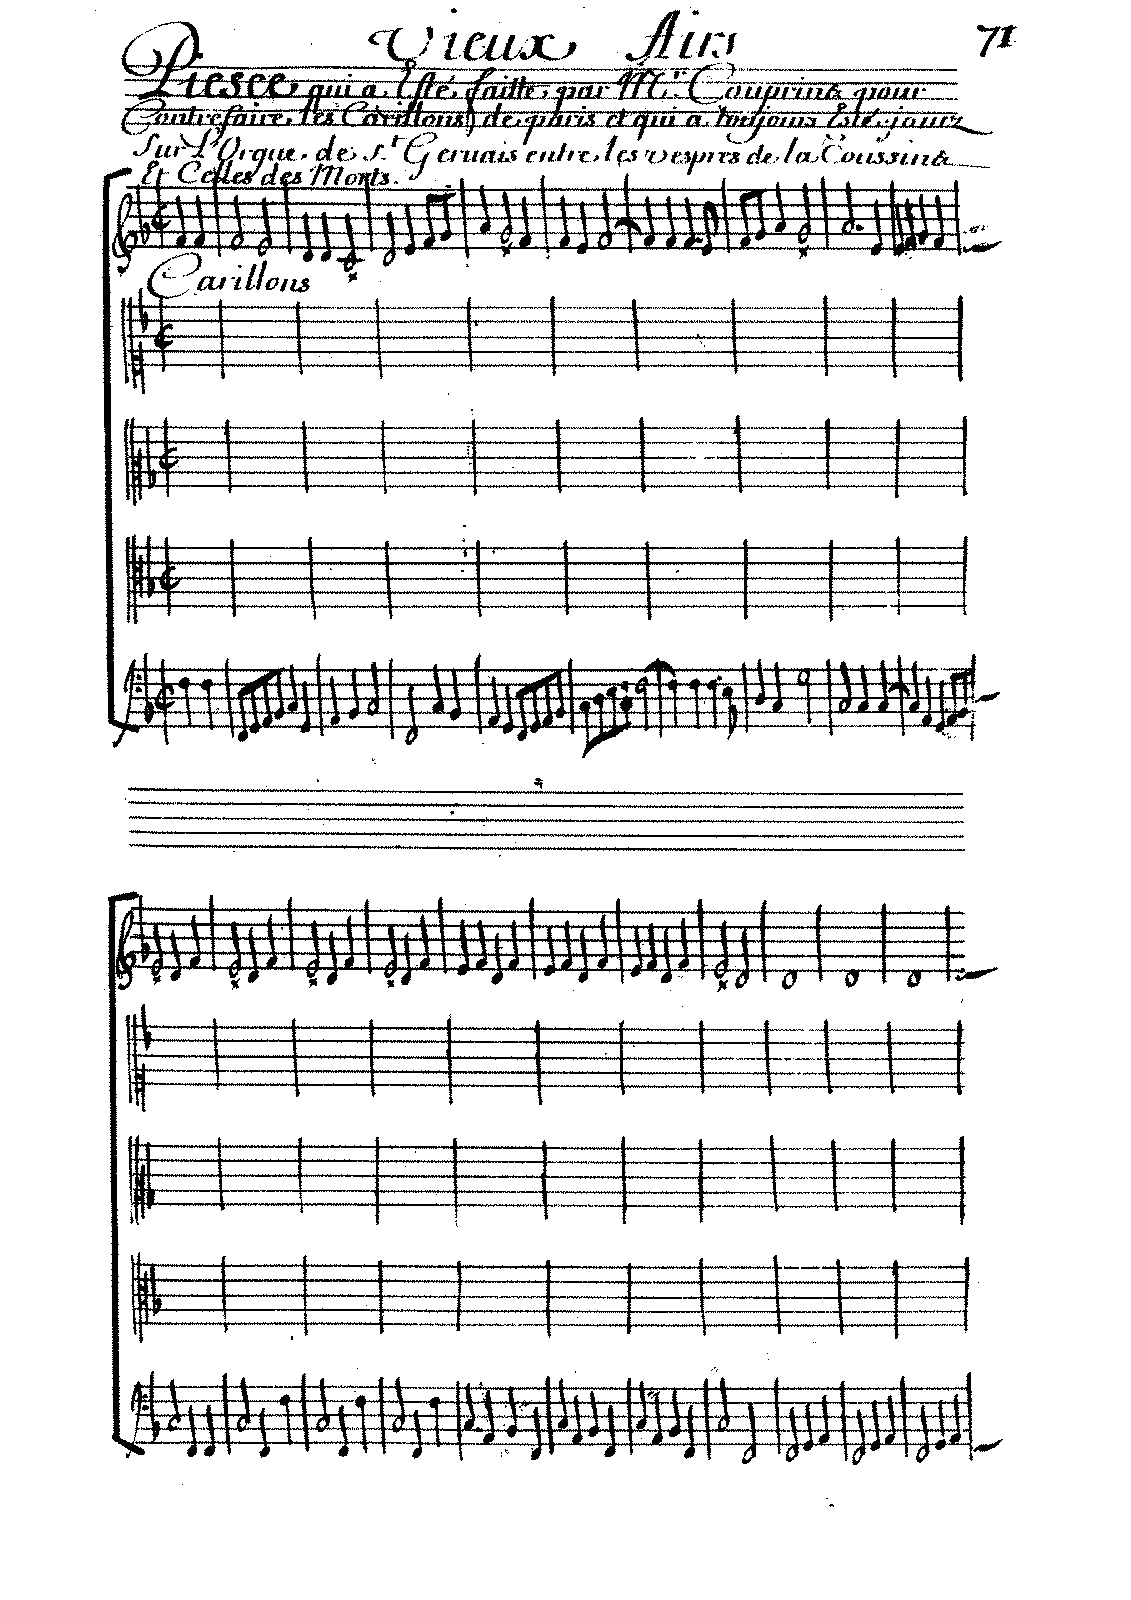 PMLP128061-Couperin-Carillons.pdf